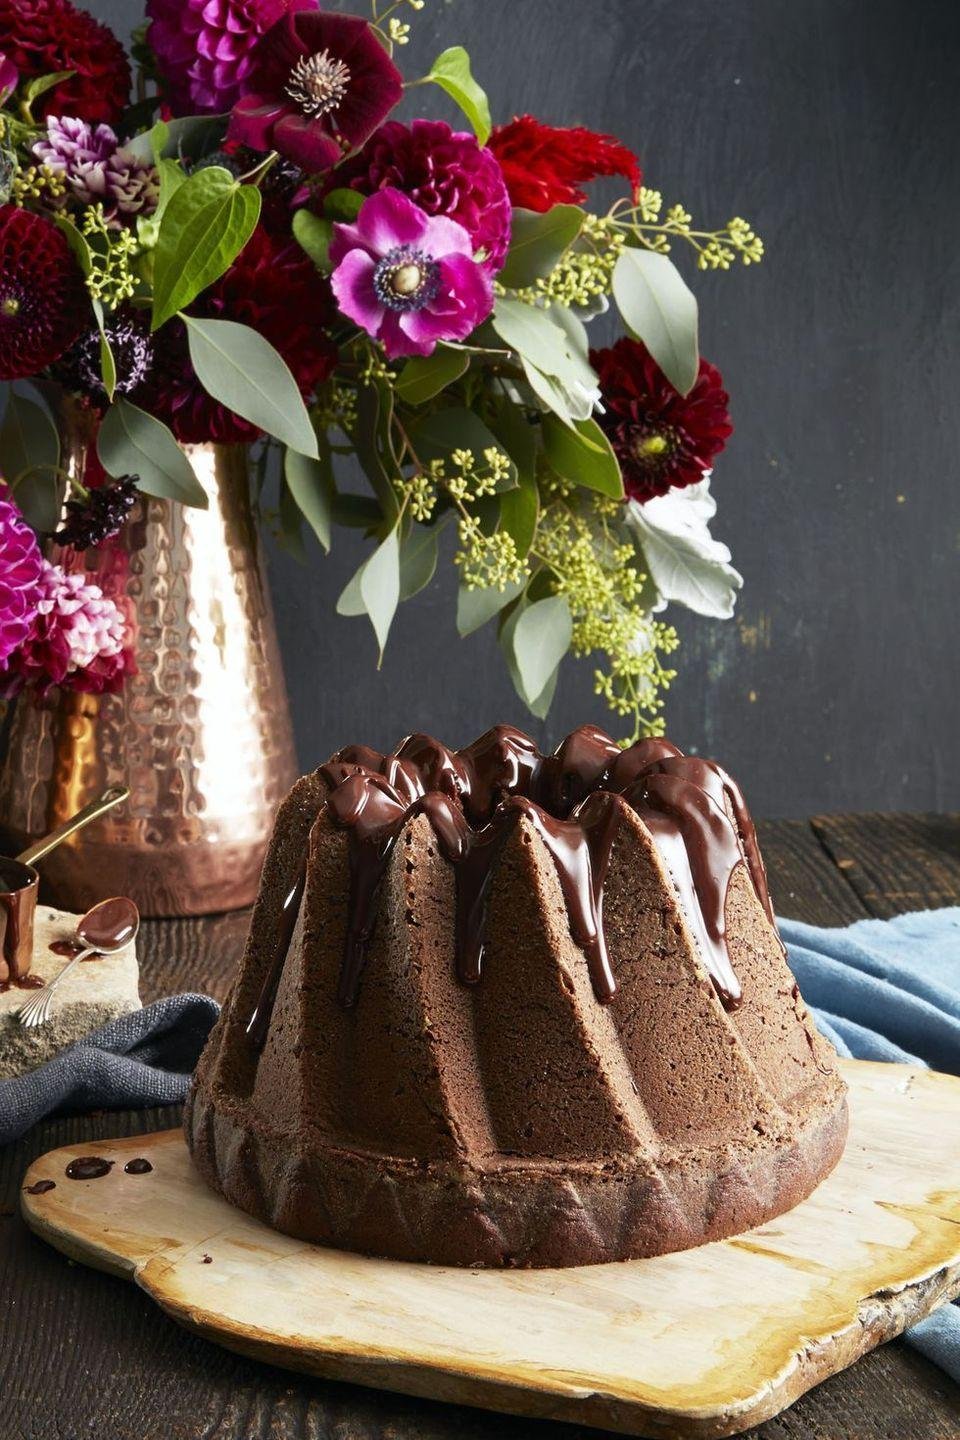 "<p>Strong-brewed coffee in the batter and the frosting really amps up the cocoa flavor, while sour cream and buttermilk keep this luscious dessert decadently rich.</p><p><em><a href=""https://www.goodhousekeeping.com/food-recipes/dessert/a35180/double-chocolate-bundt/"" rel=""nofollow noopener"" target=""_blank"" data-ylk=""slk:Get the recipe for Double Chocolate Bundt »"" class=""link rapid-noclick-resp"">Get the recipe for Double Chocolate Bundt »</a></em></p><p><strong>RELATED: </strong><a href=""https://www.goodhousekeeping.com/food-recipes/cooking/g32223075/how-to-make-coffee-at-home/"" rel=""nofollow noopener"" target=""_blank"" data-ylk=""slk:Here's How to Make Coffee at Home Using 7 Different Brewing Methods"" class=""link rapid-noclick-resp"">Here's How to Make Coffee at Home Using 7 Different Brewing Methods</a><br></p>"